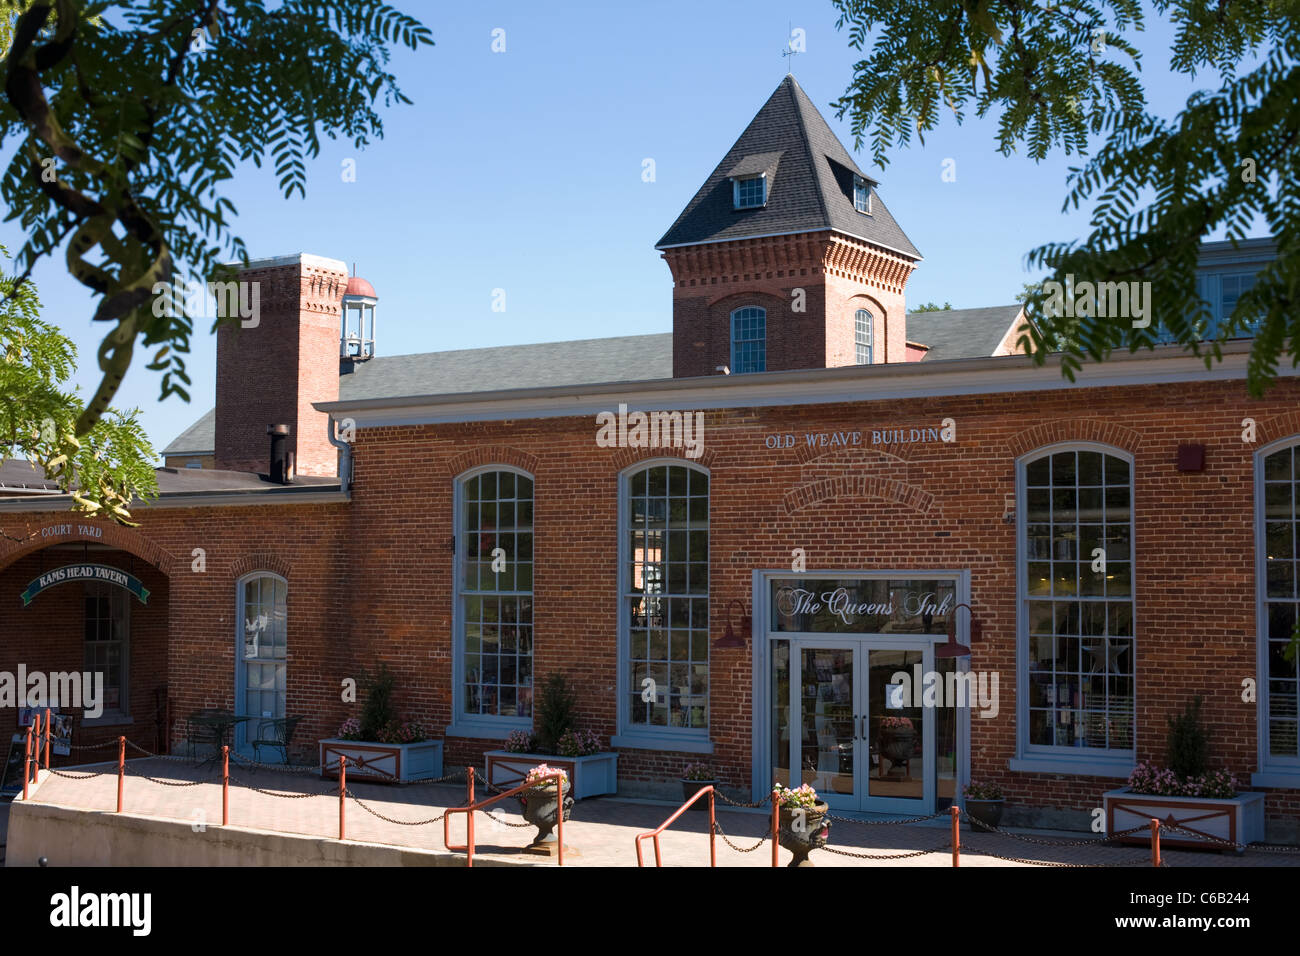 Savage Mill, a shopping emporium, Savage, Maryland, Howard County - Stock Image